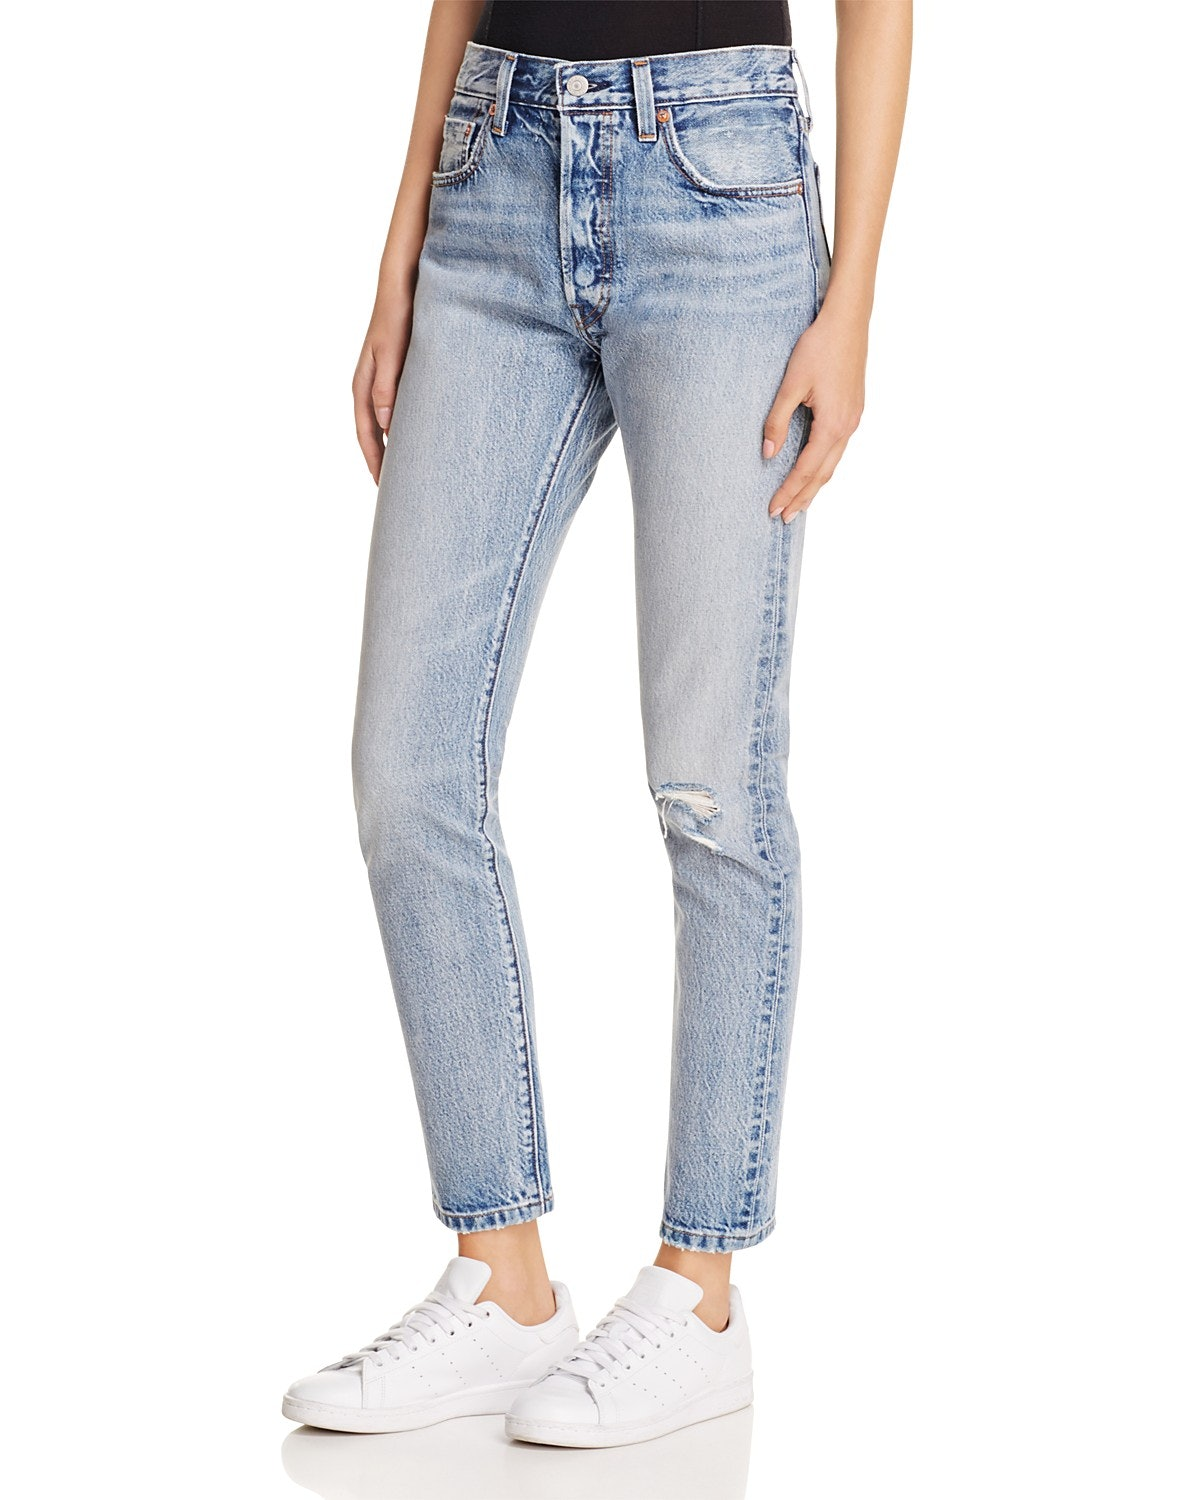 e9521ad5 Levis Womens 501 Skinny Fit Ripped Jeans Old Hangouts